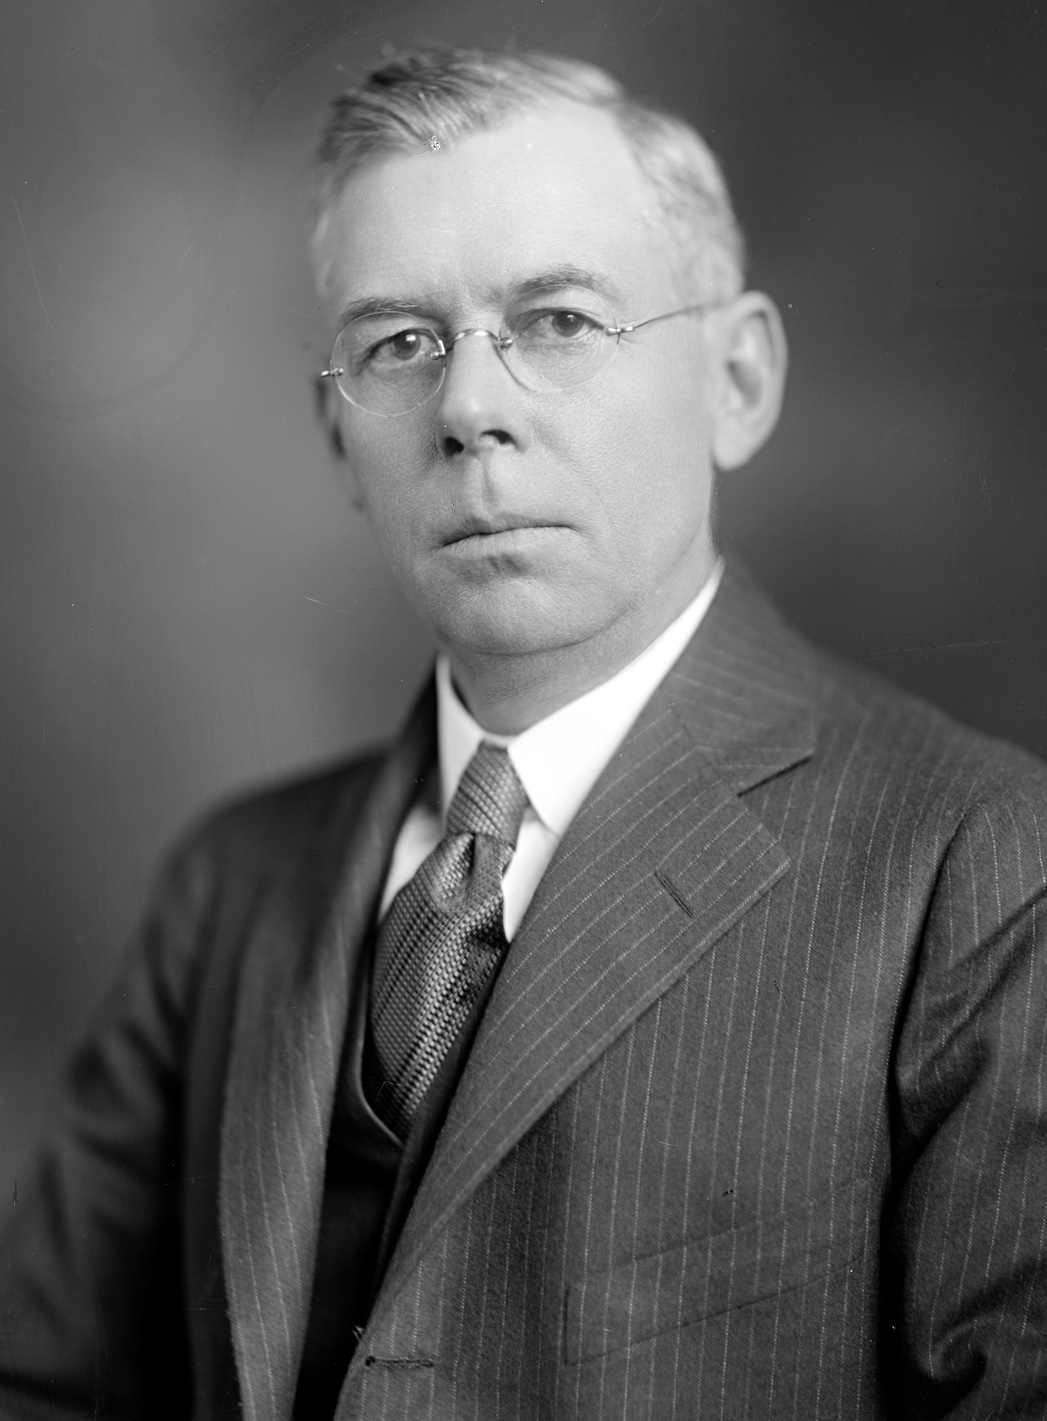 William C. Wright